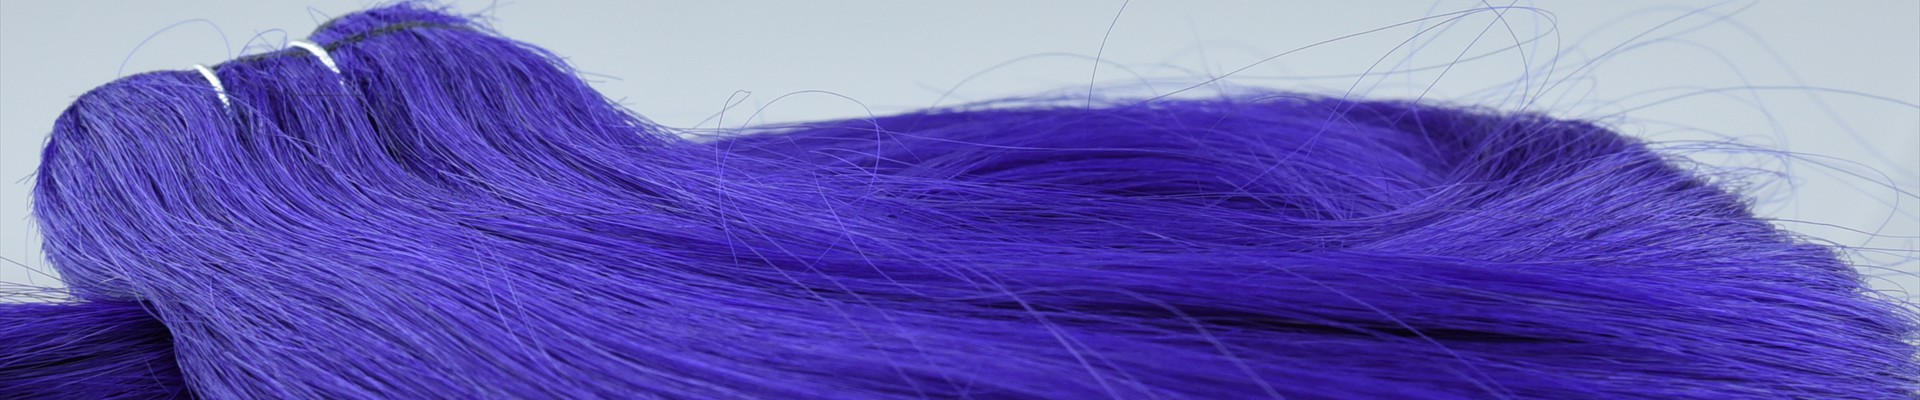 Purple-Weft-Hair-Extension